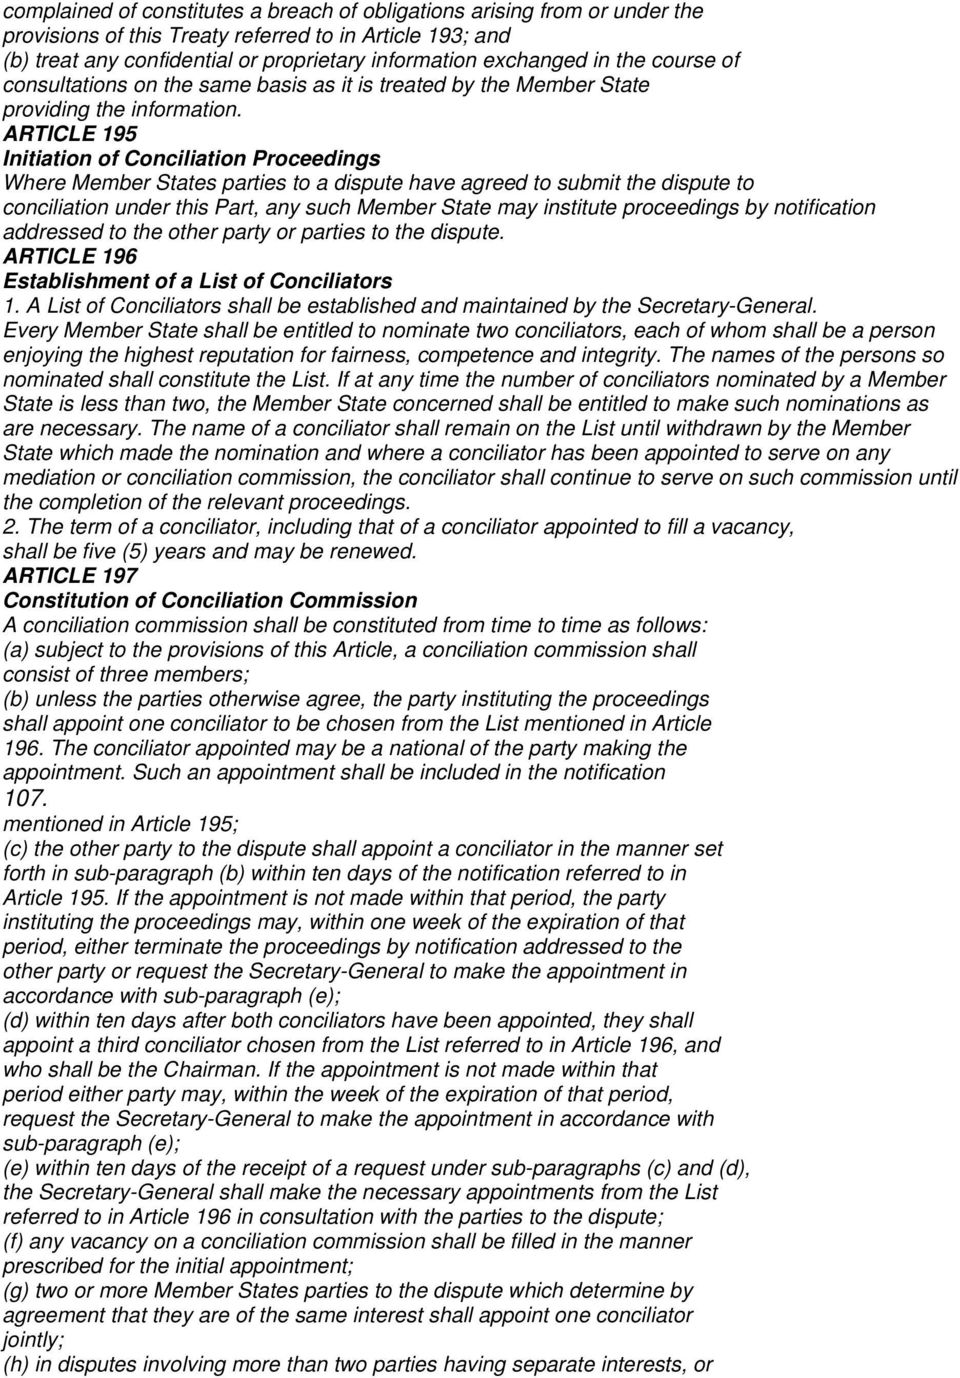 ARTICLE 195 Initiation of Conciliation Proceedings Where Member States parties to a dispute have agreed to submit the dispute to conciliation under this Part, any such Member State may institute